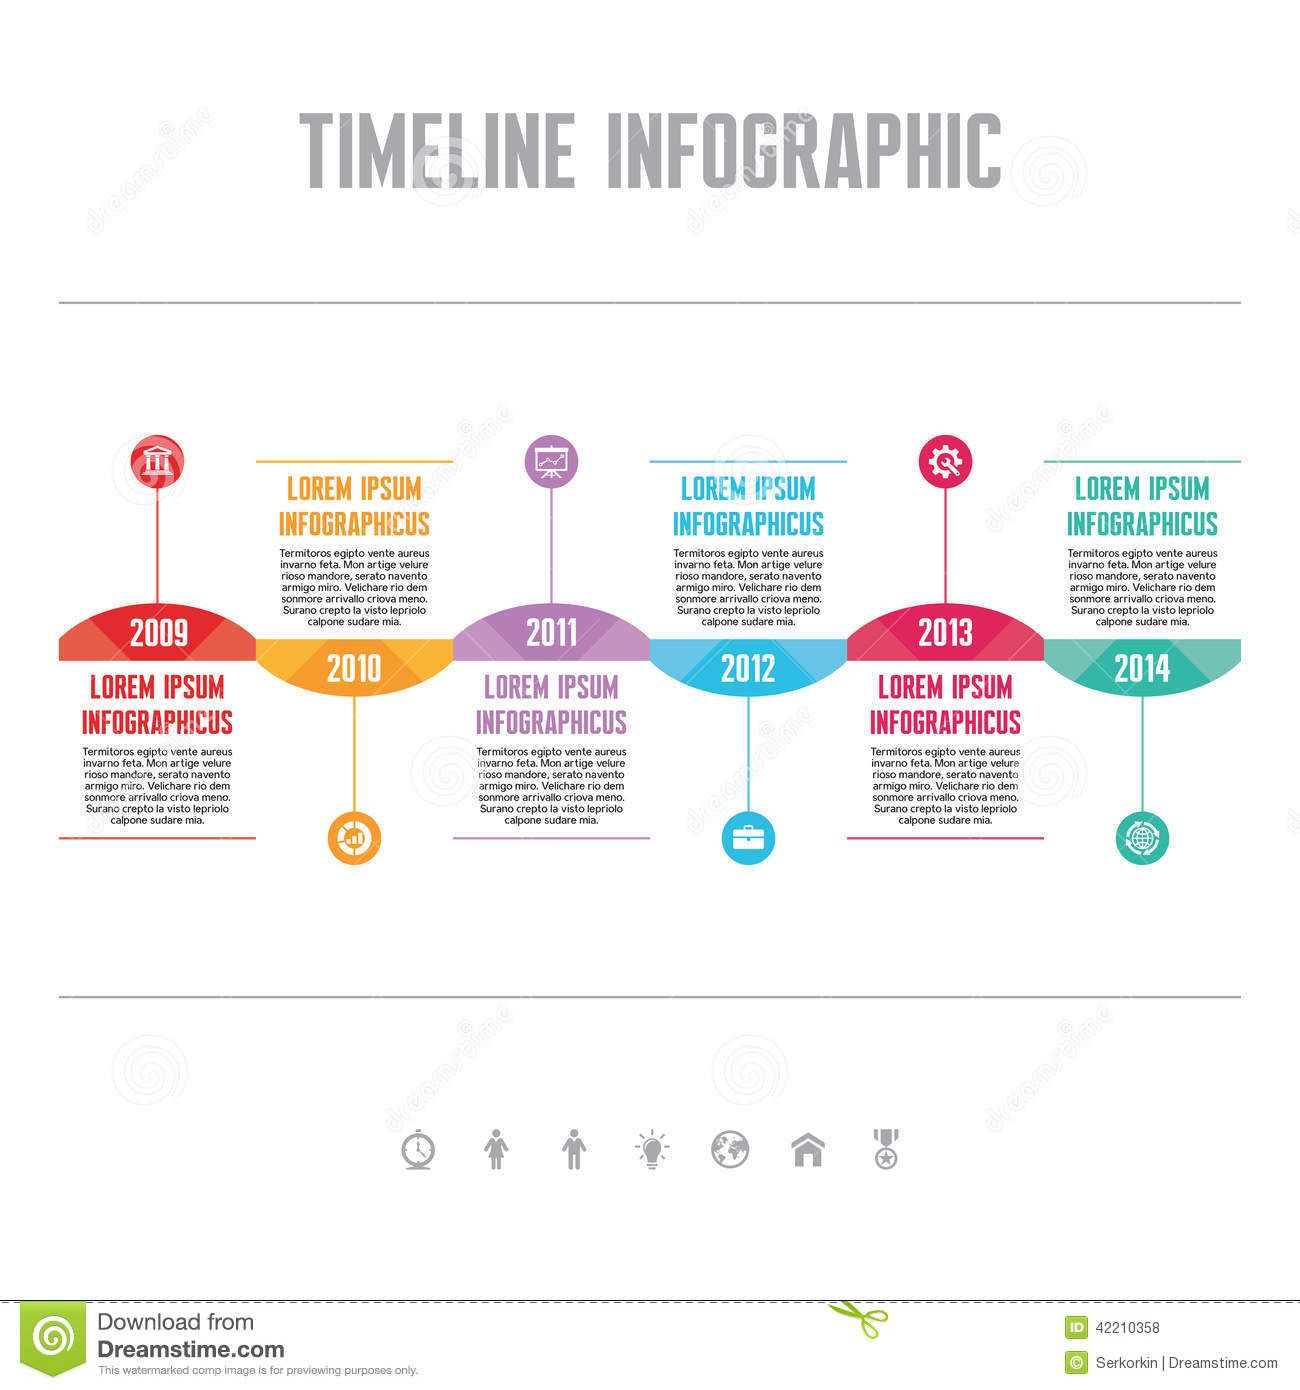 Timeline Infographic Template - Google Search